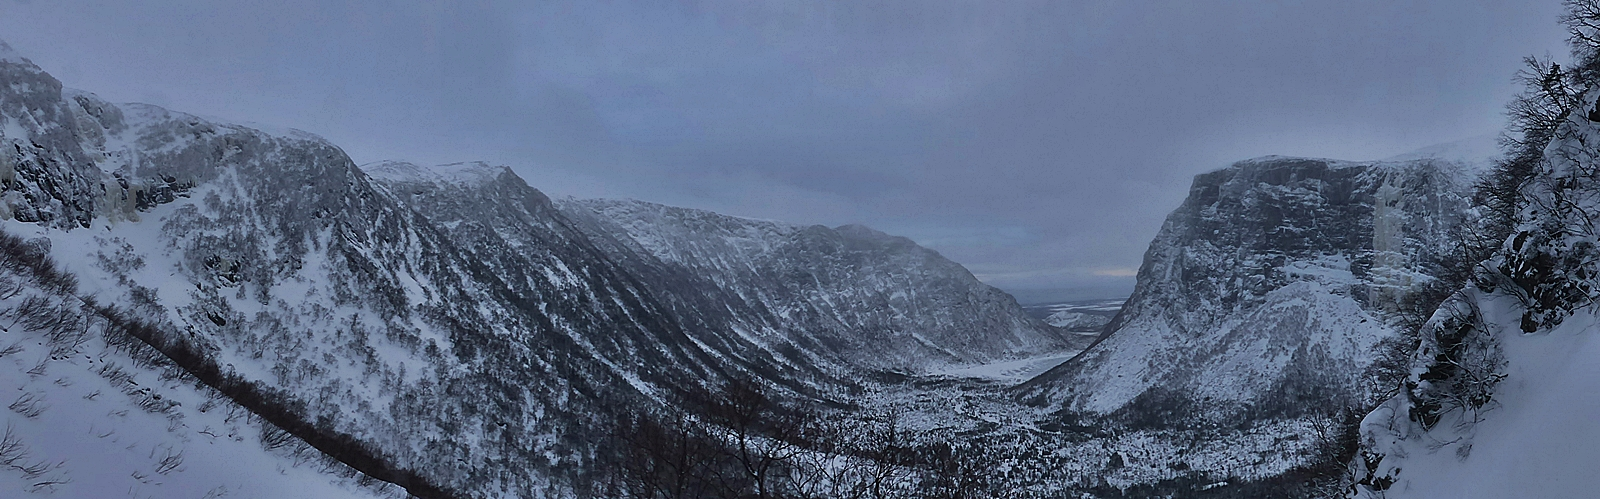 Western Brook Gulch.